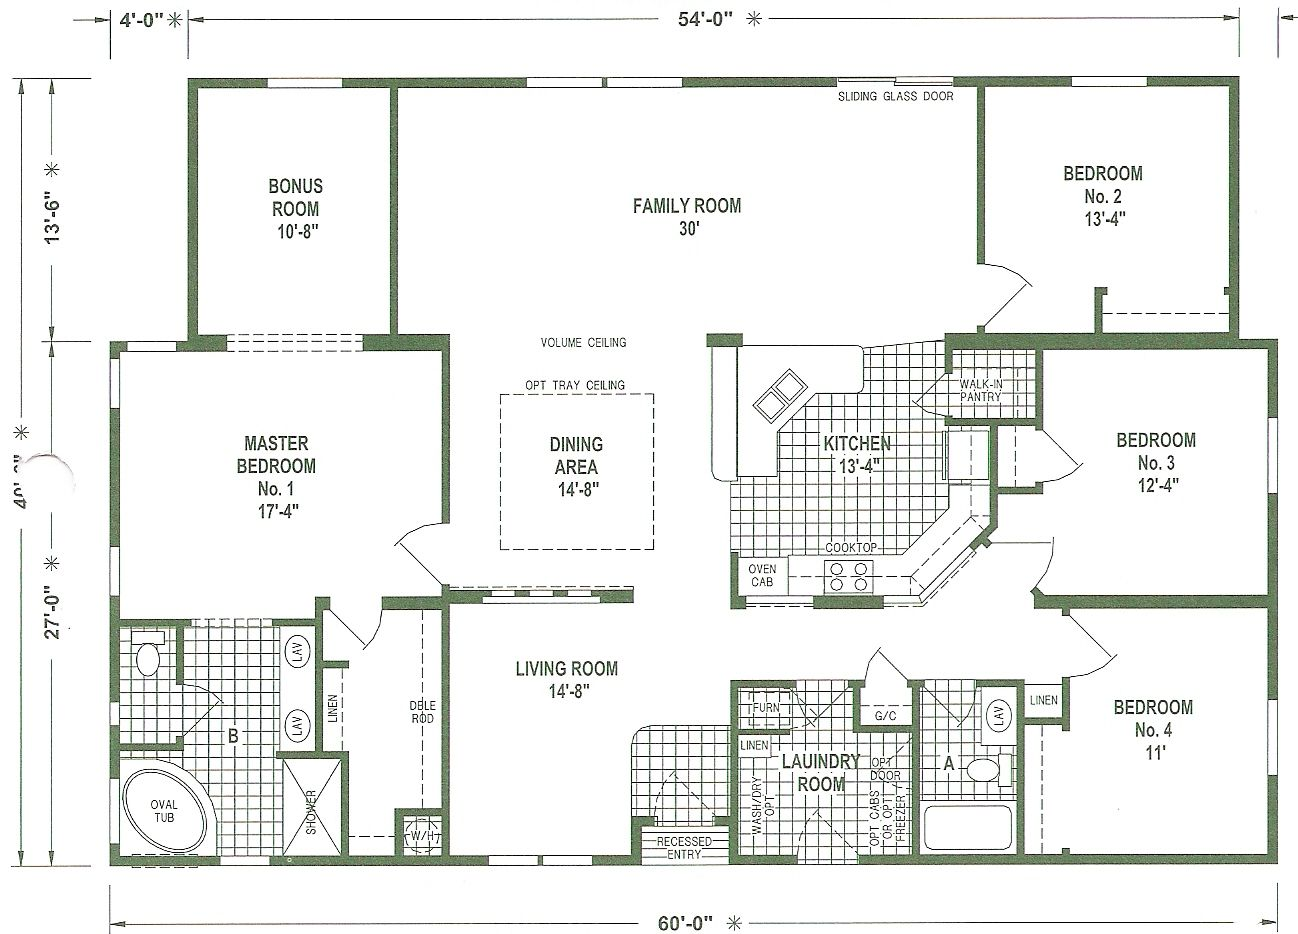 Best 25+ Mobile home floor plans ideas on Pinterest | Modular home ...